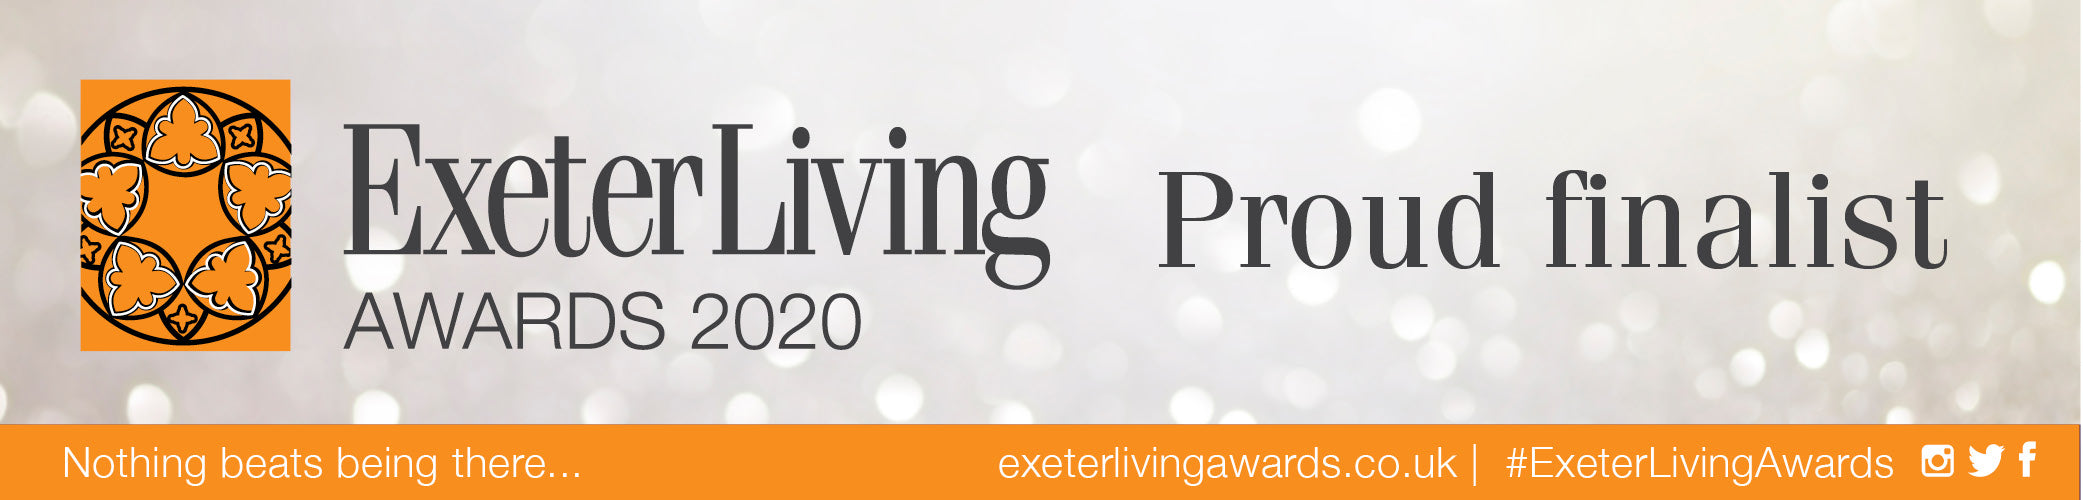 ExeterLiving Proud Finalist